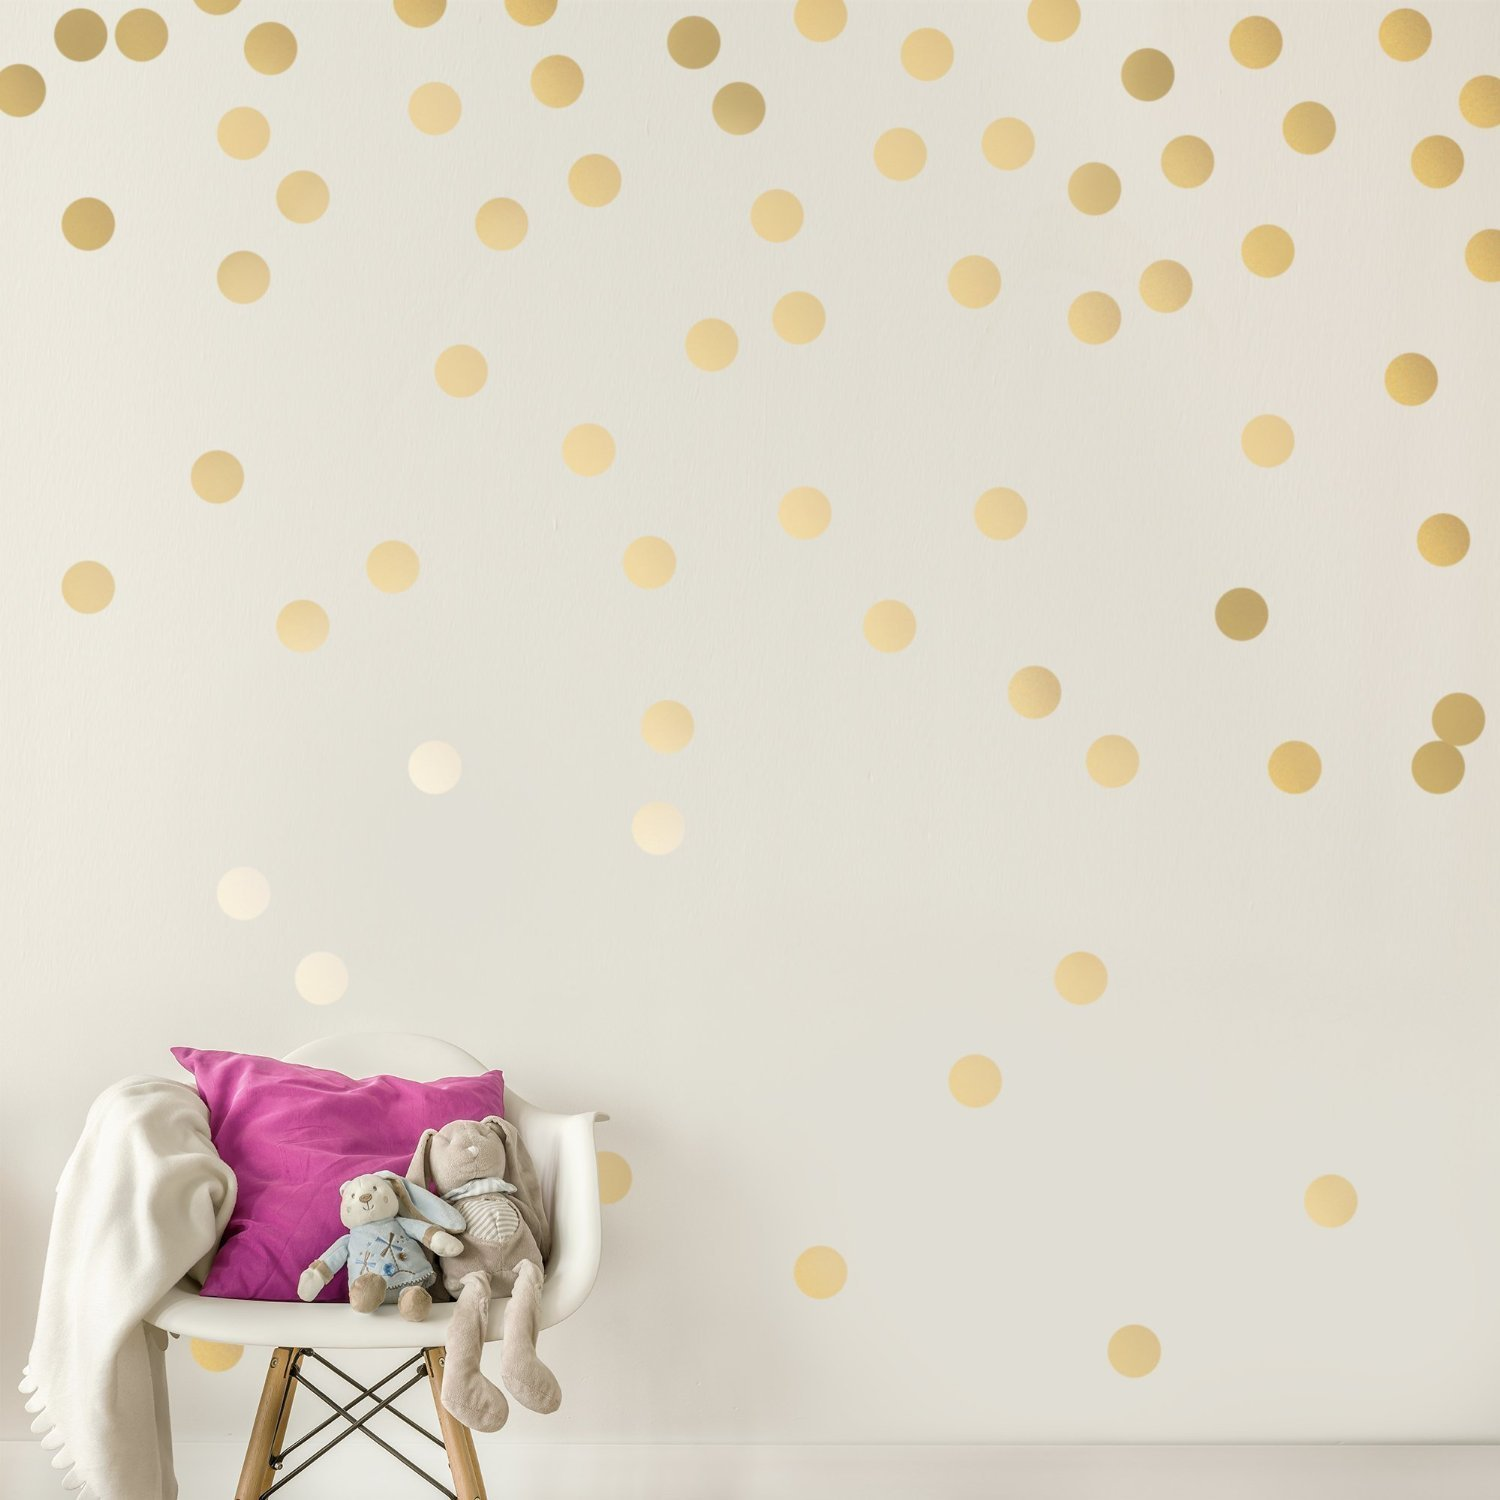 Easy Peel + Stick Gold Wall Decal Dots - 3cm/1.2inch (216 Decals) - Safe on Walls & Paint Metallic Vinyl Polka Dot Decor - Round Circle Art Stickers Murals - Paper Sheet Baby Kids Nursery Room Set FENGMANG